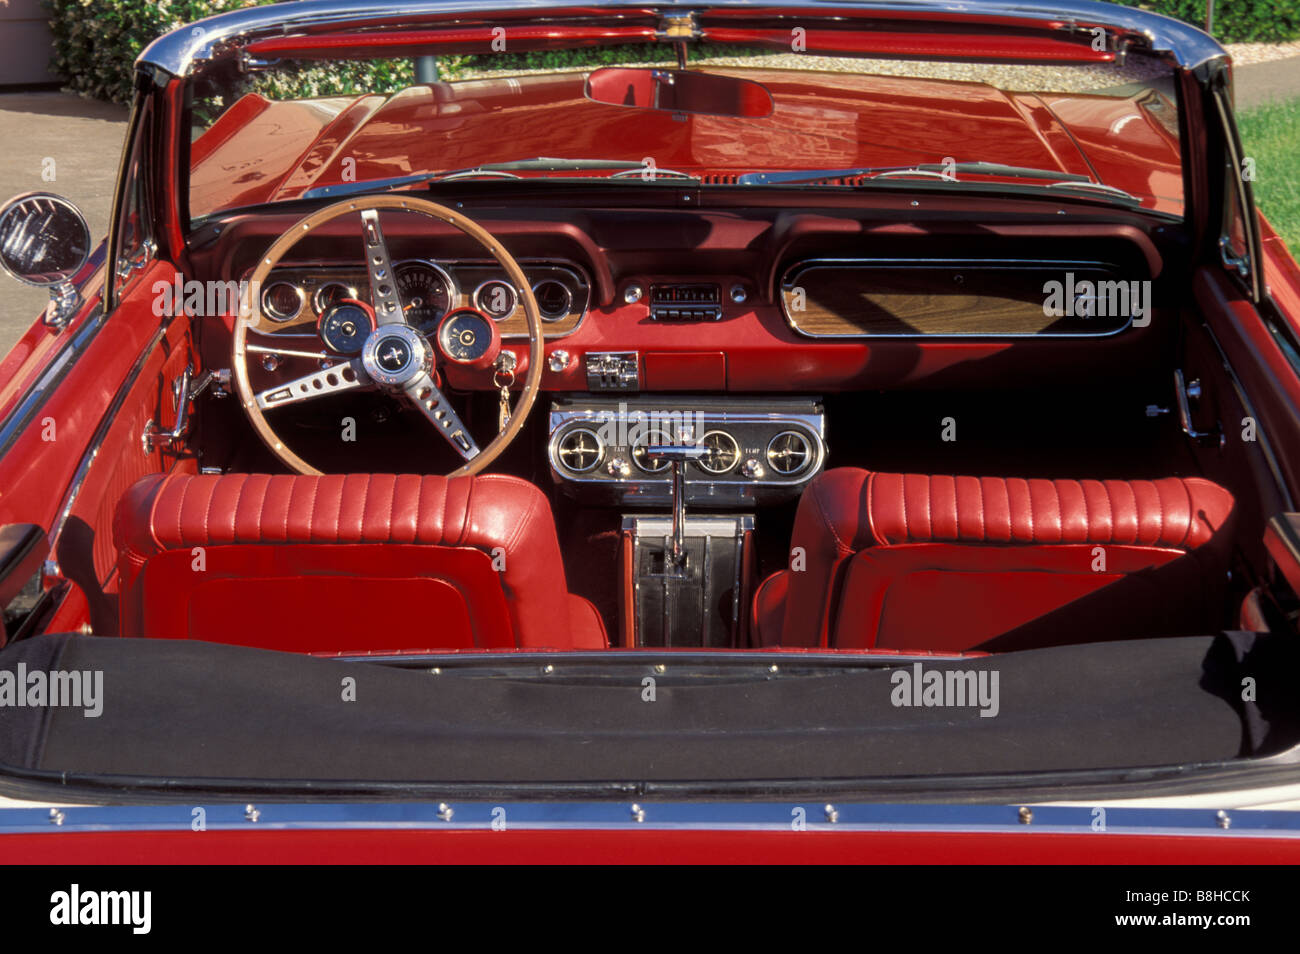 Classic 1966 Ford Mustang Convertible Red Leather Interior Stock Photo Royalty Free Image